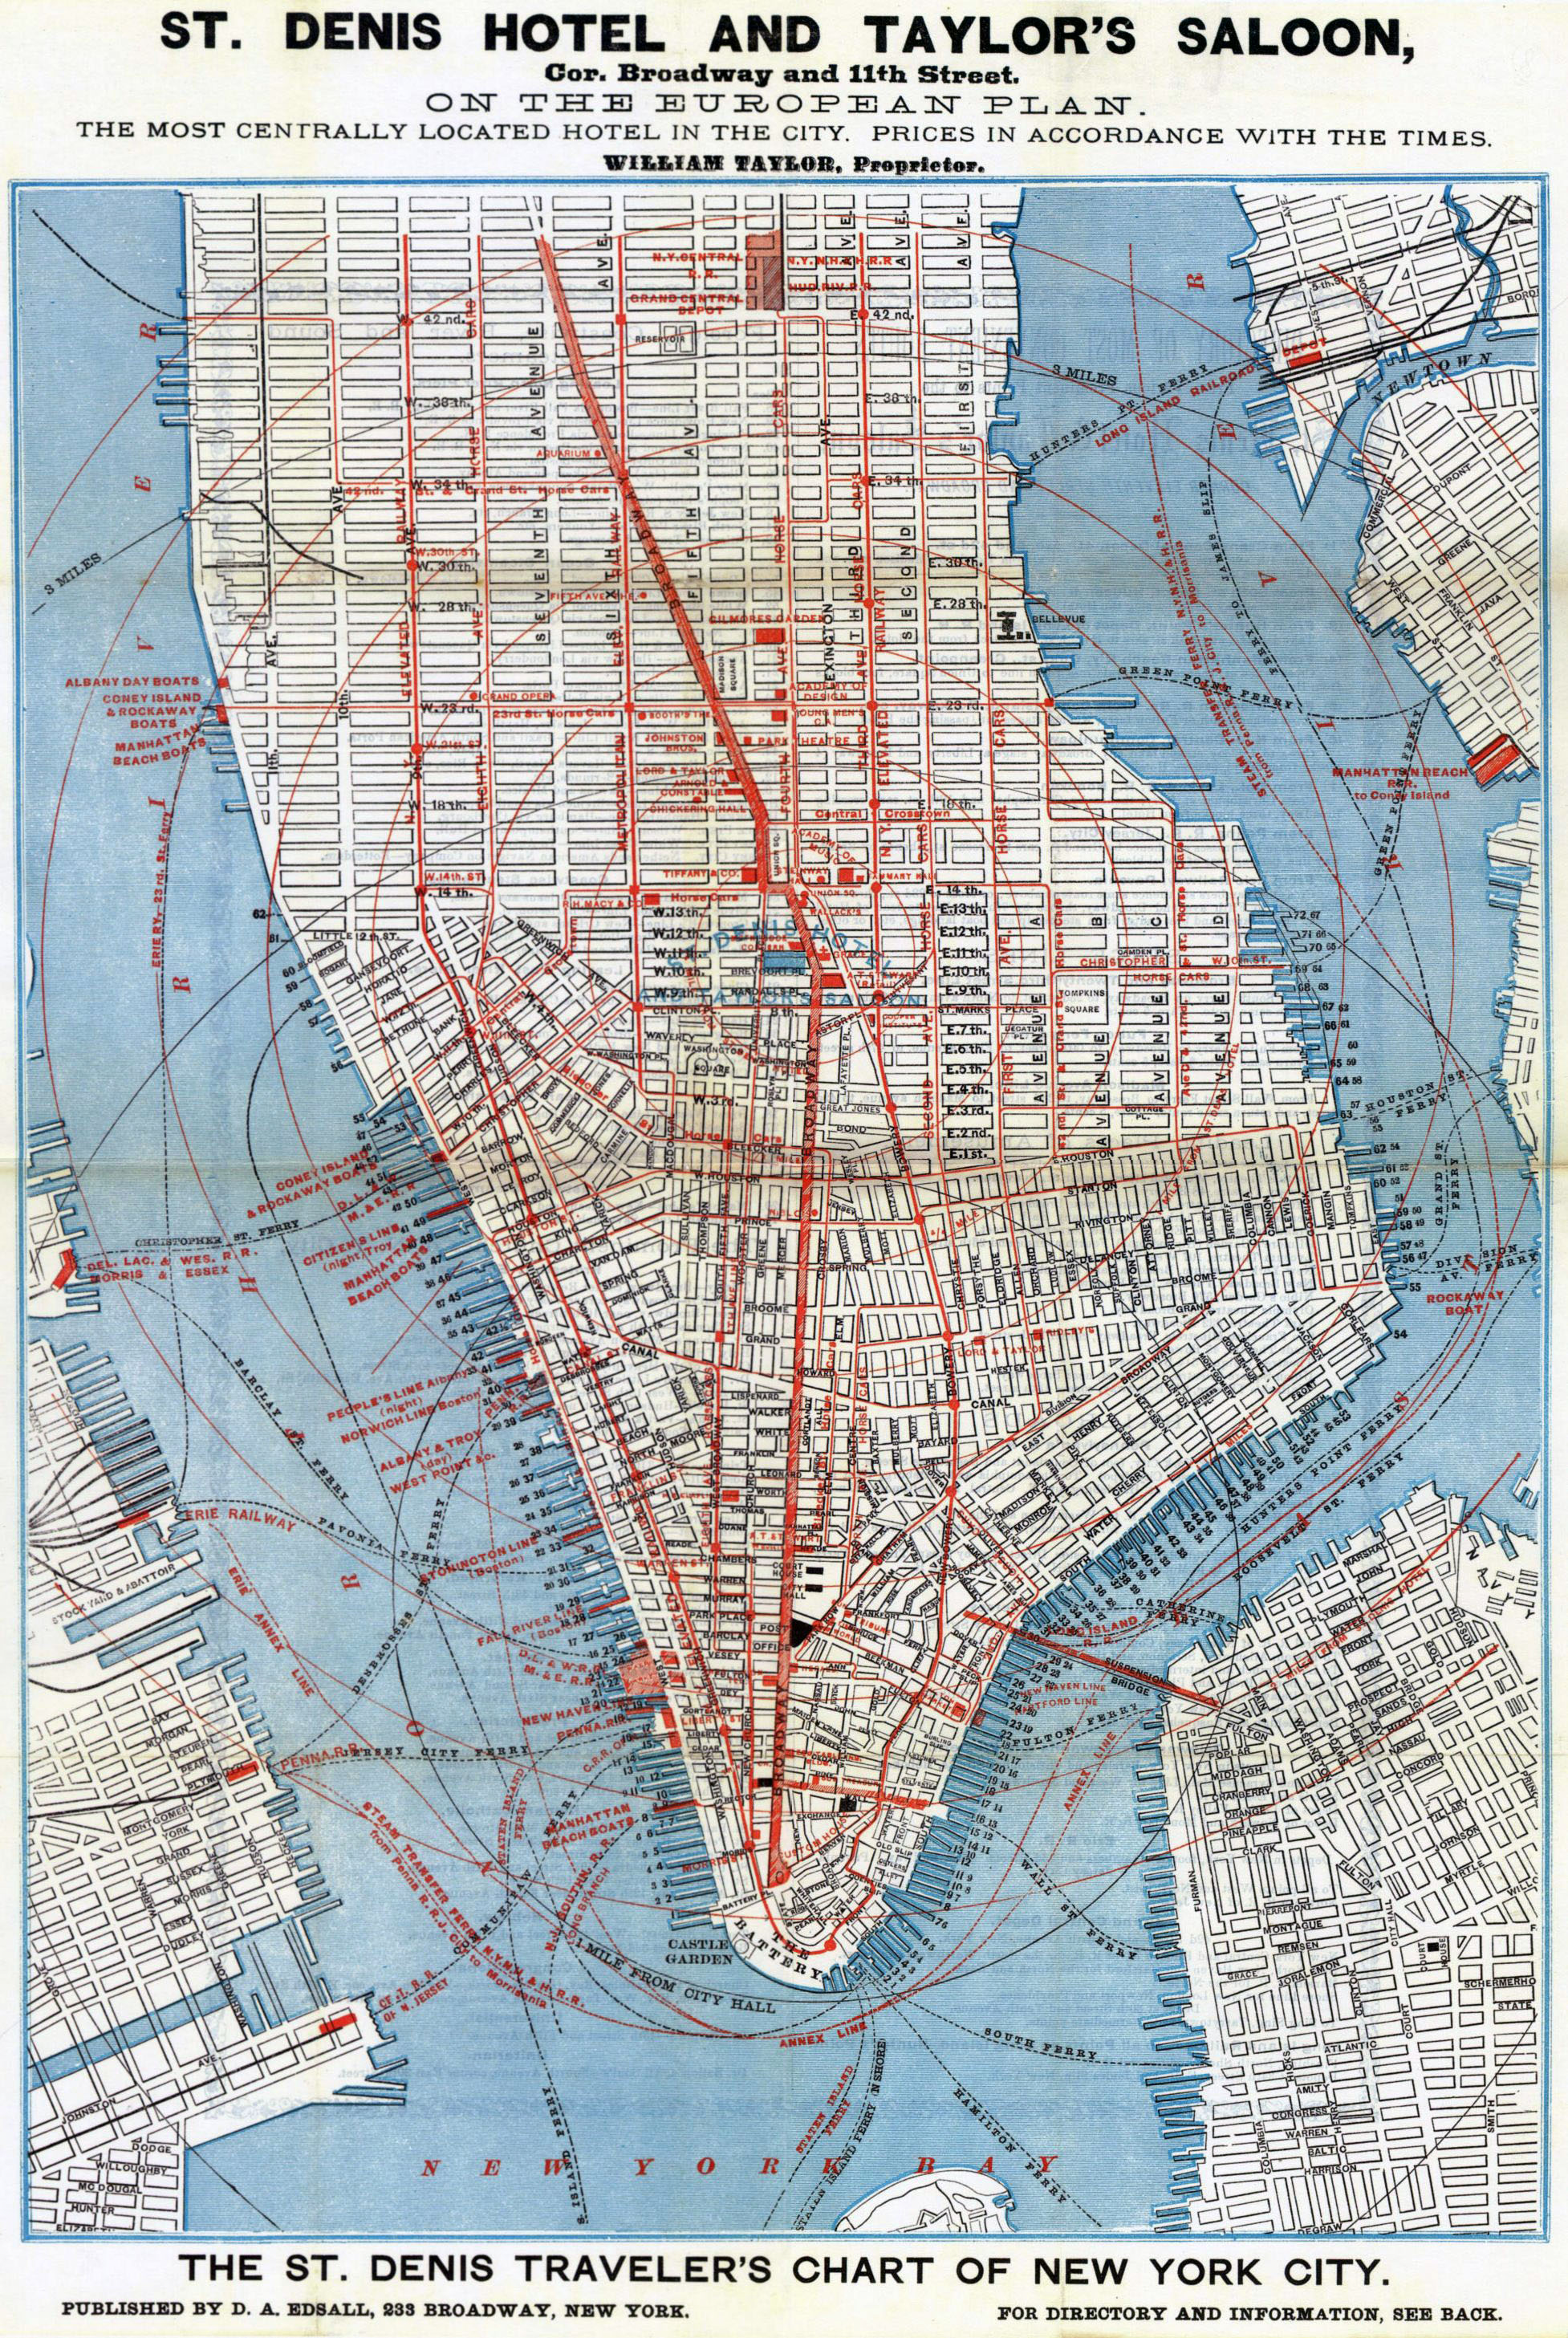 Hotel Map Of New York City.Large Detailed St Denis Hotel And Taylor S Saloon Road Map Of Lower